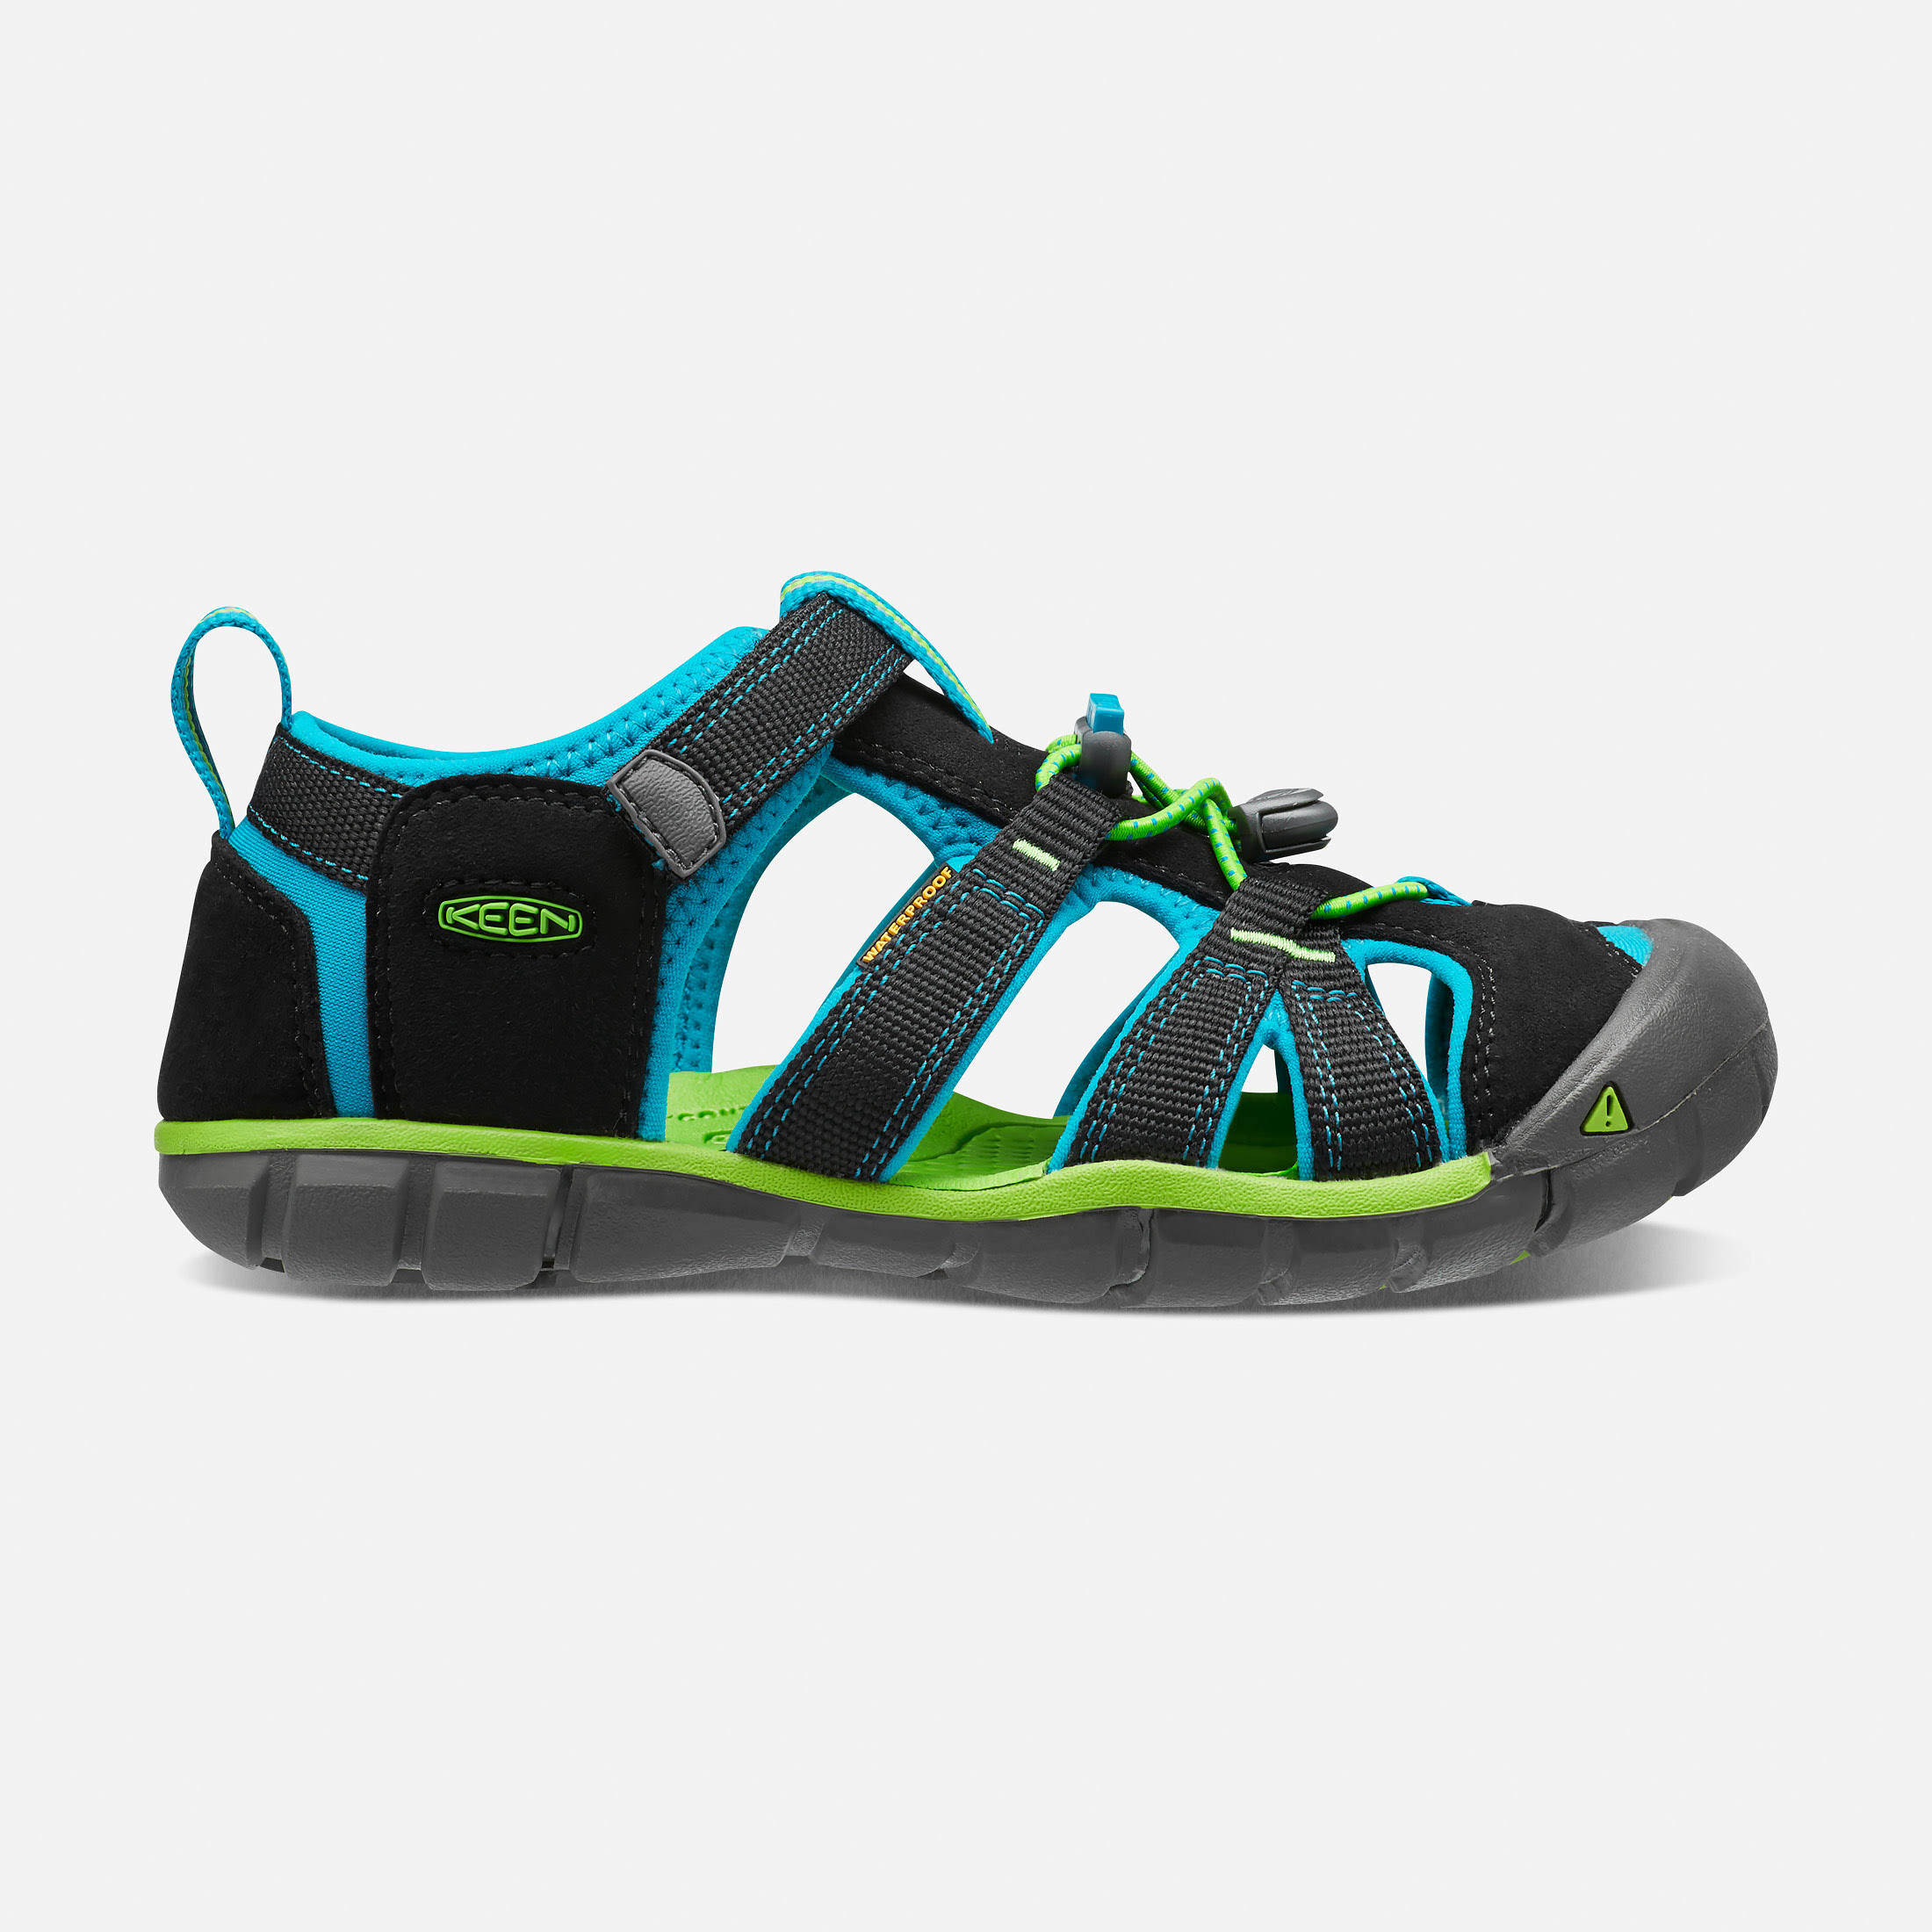 Keen Seacamp II CNX Sandals Black 3 Kids